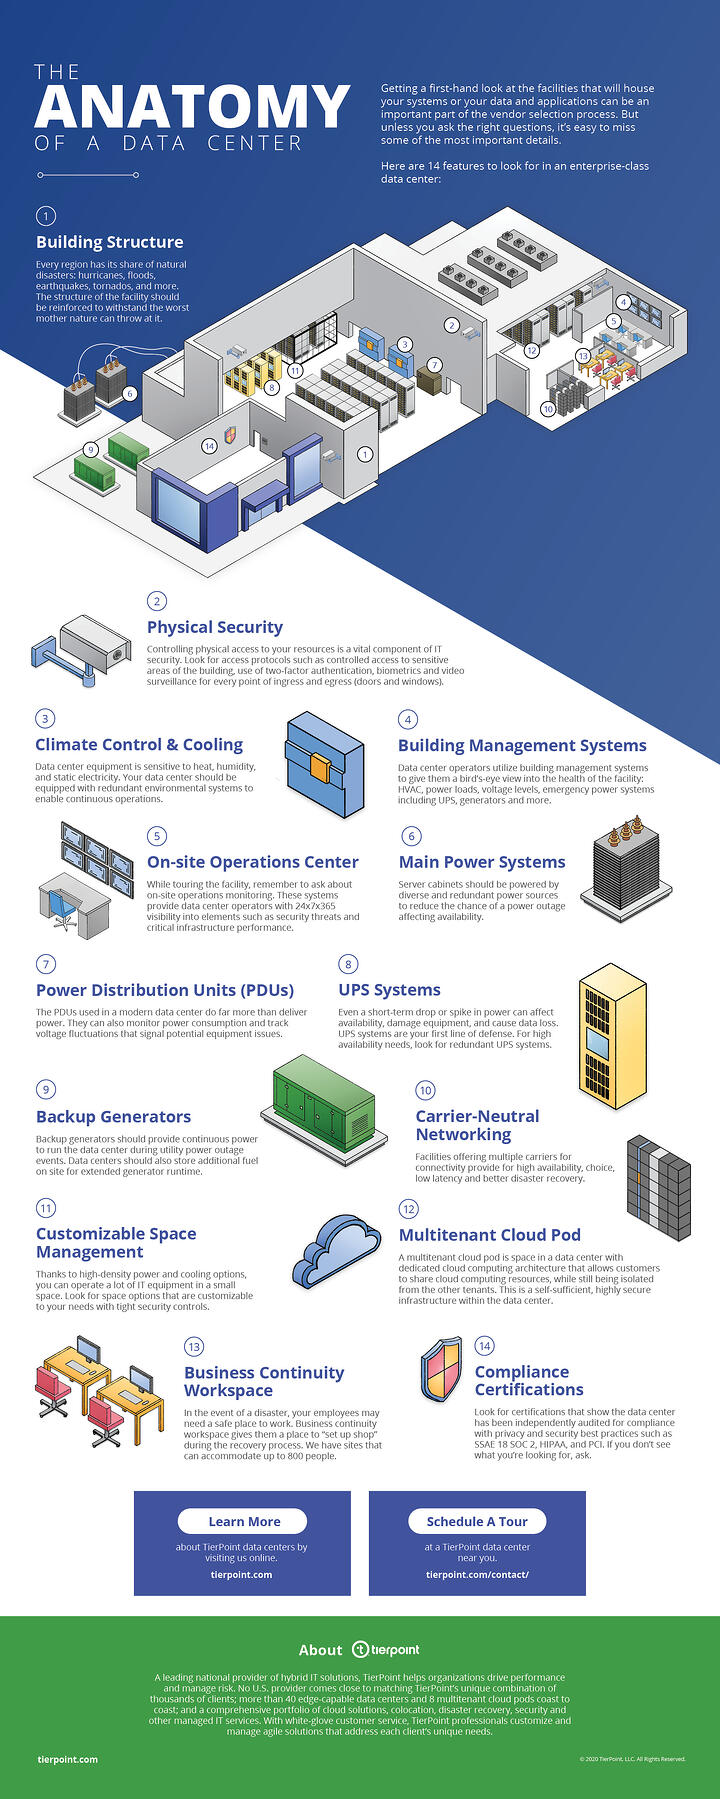 the-anatomy-of-a-data-center-infographic